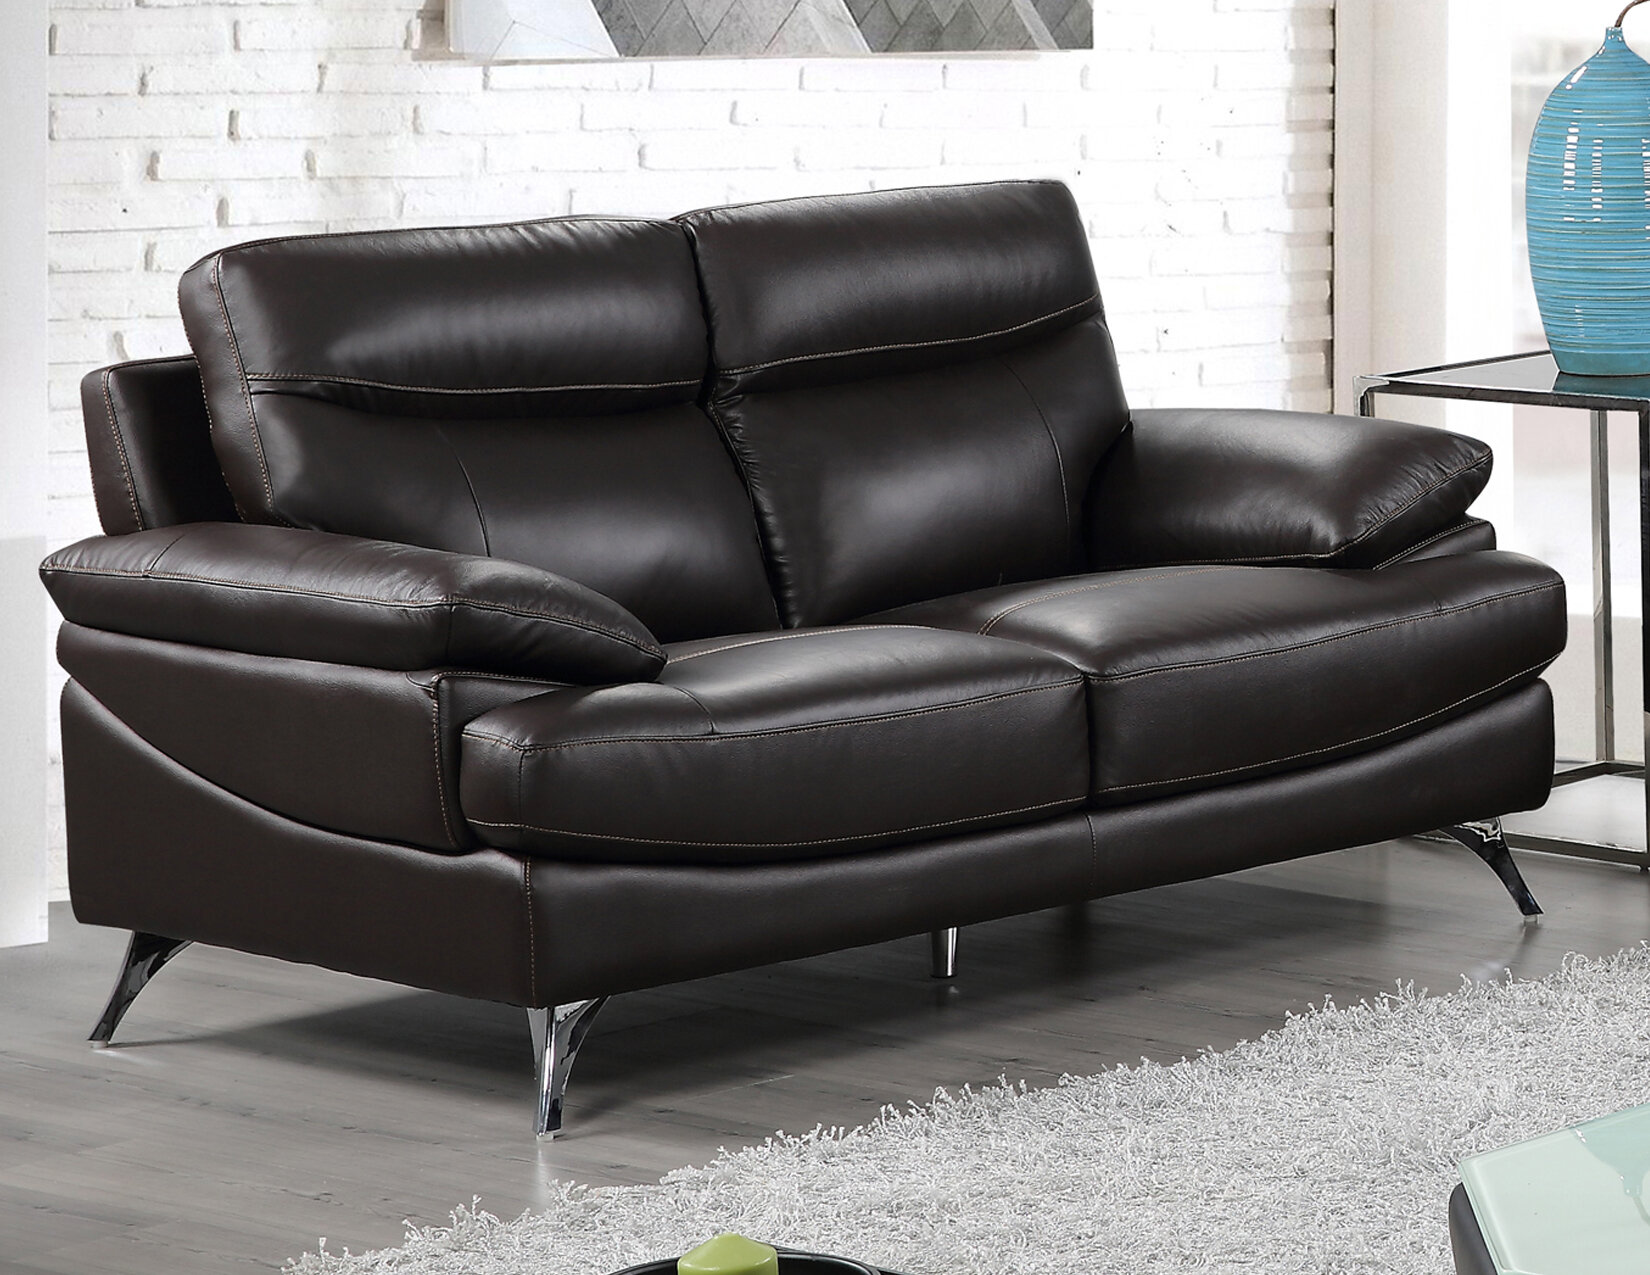 Best quality furniture leather loveseat wayfair